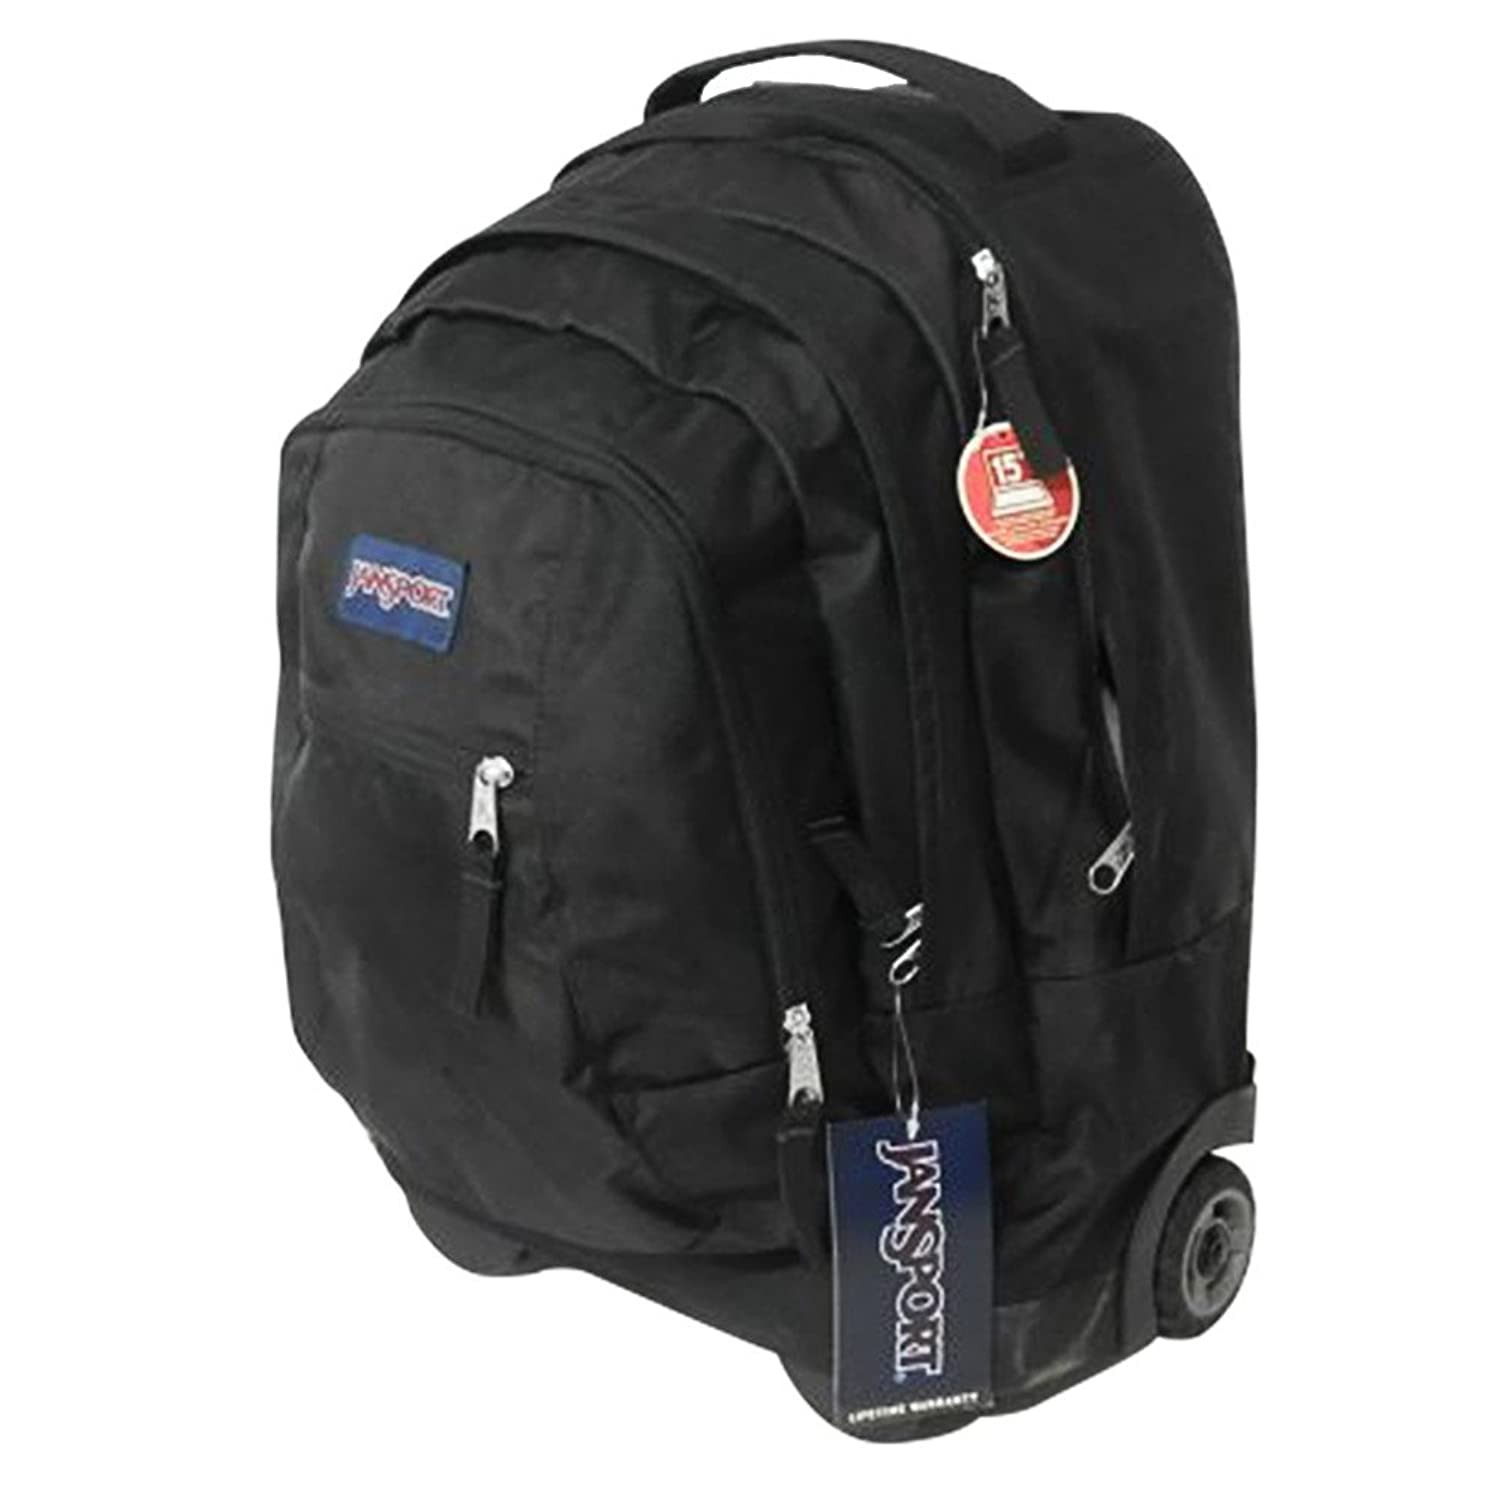 Jansport Driver 8 Rolling Backpack Lowest Price - Dream Shuttles 7b41f8347bc7f